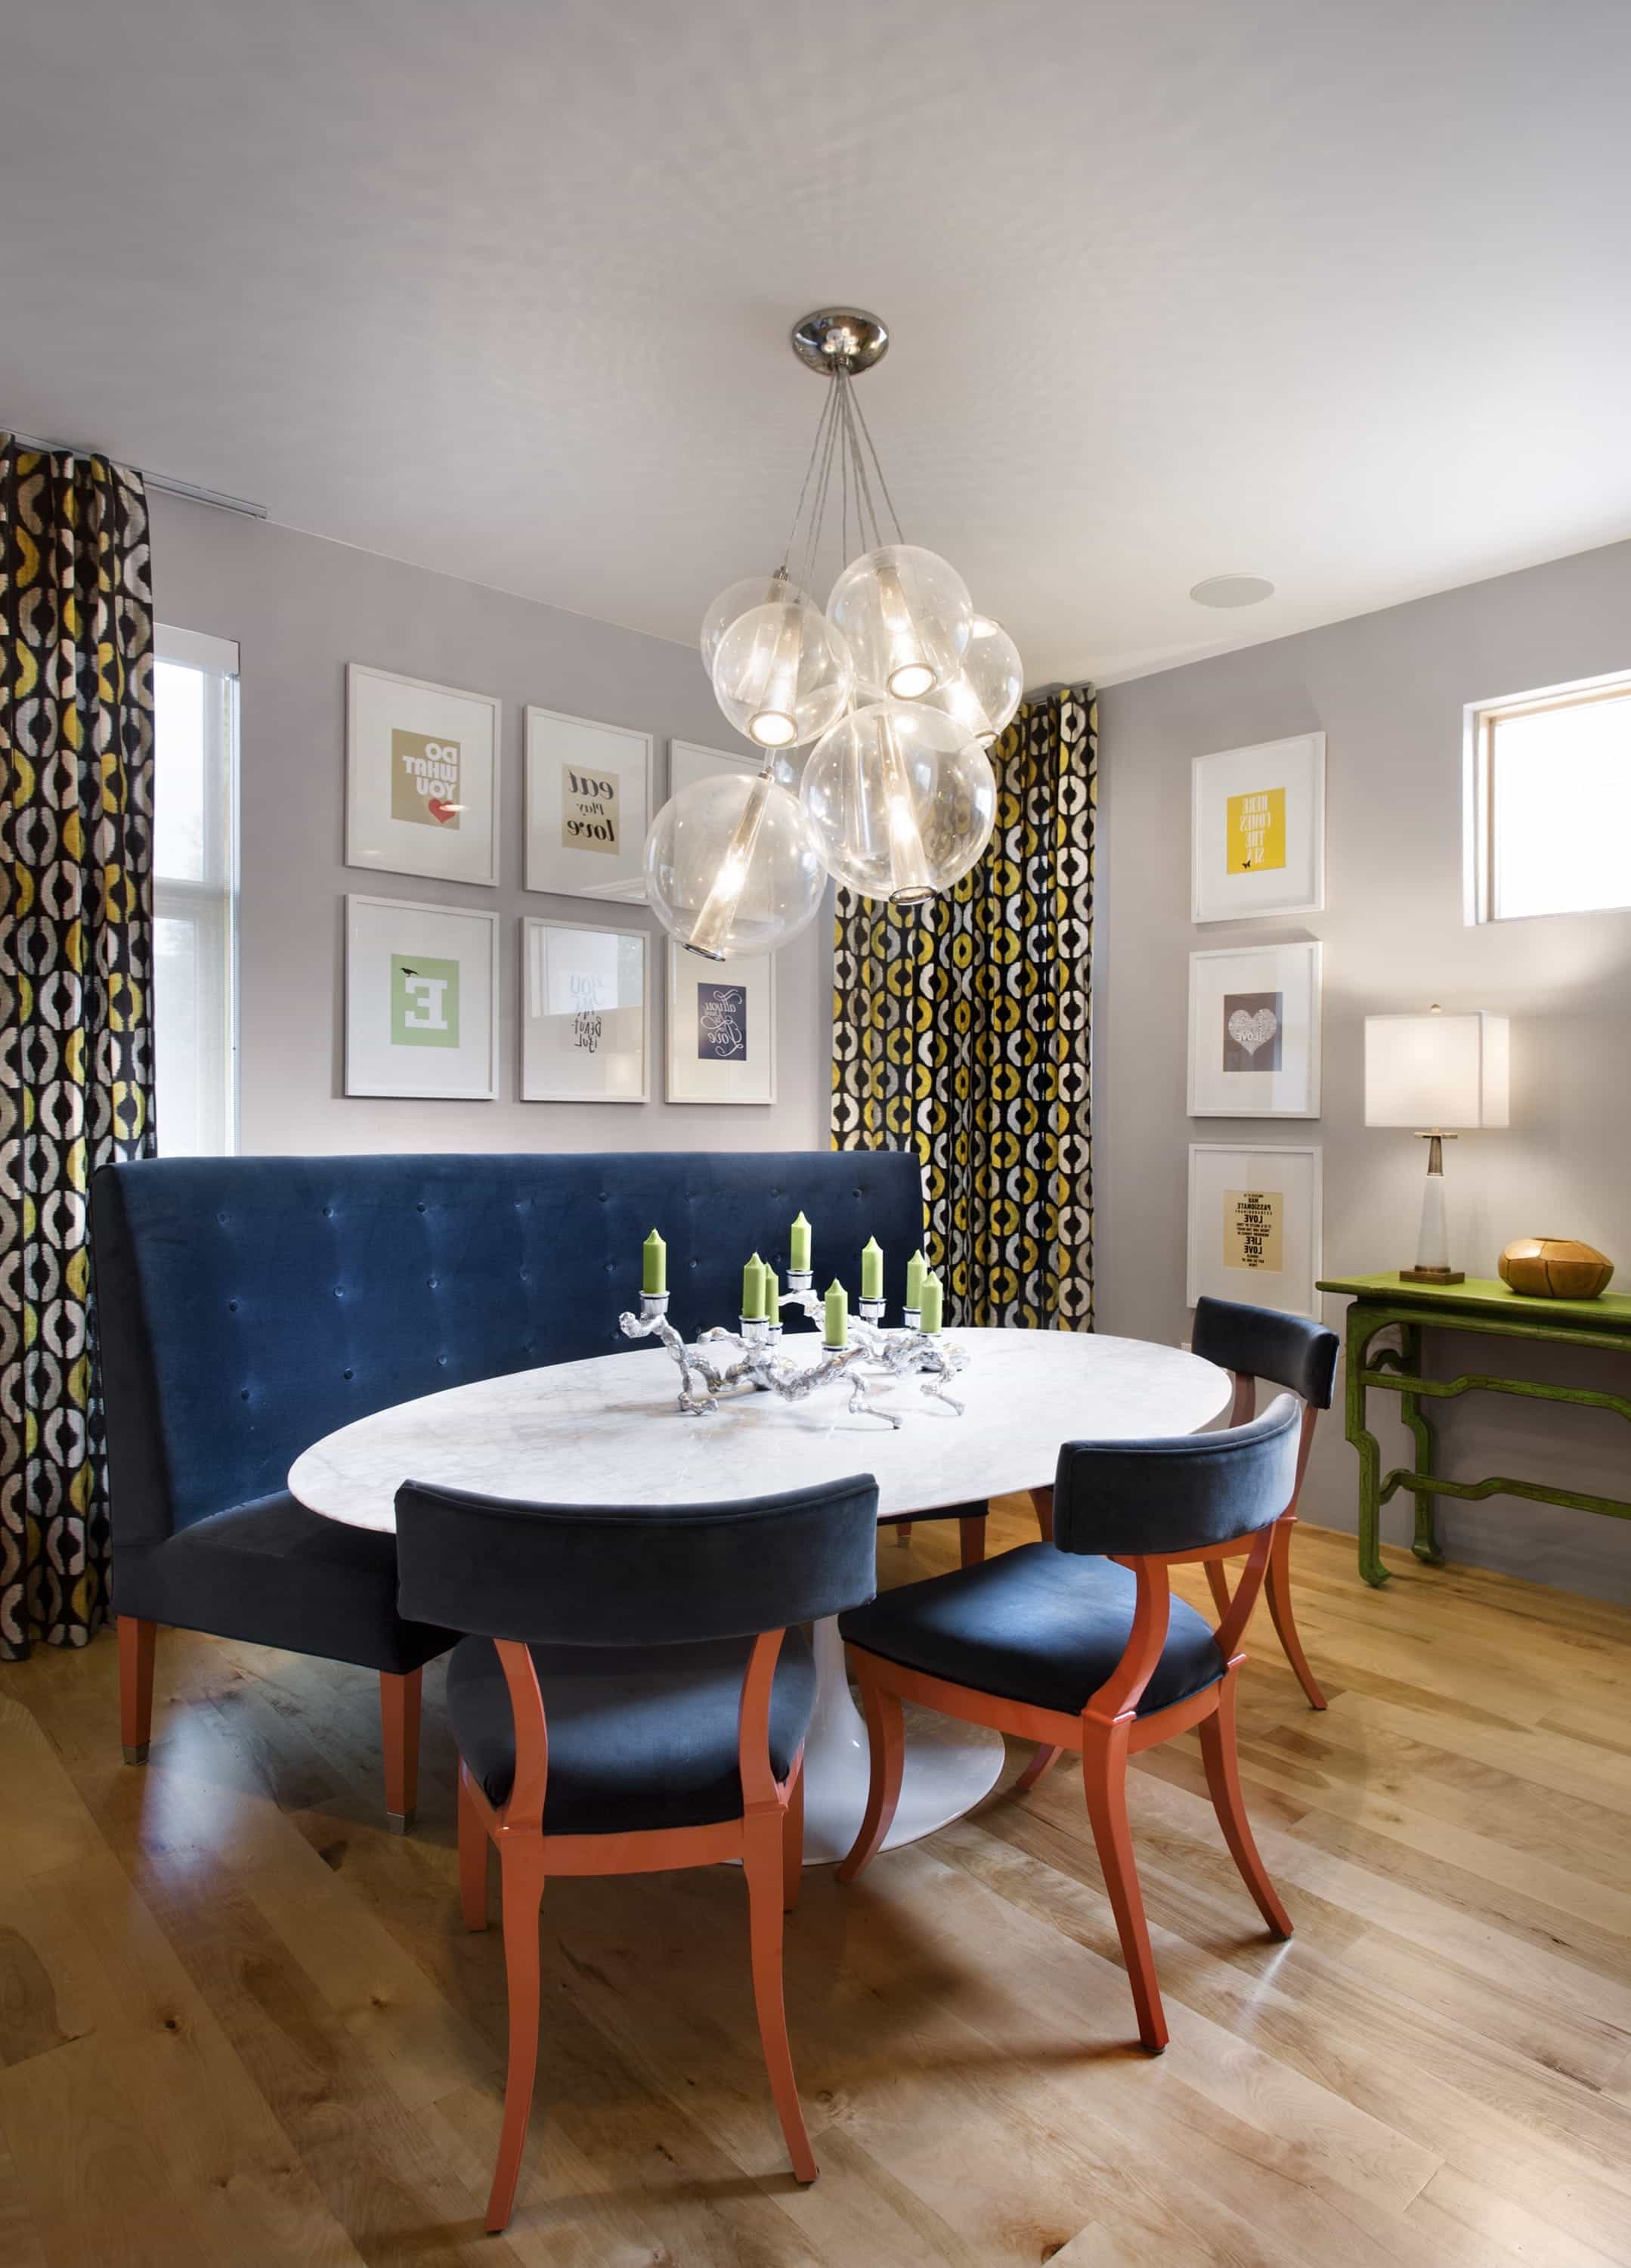 Modern Cozy Breakfast Room With Oval Table (View 9 of 25)